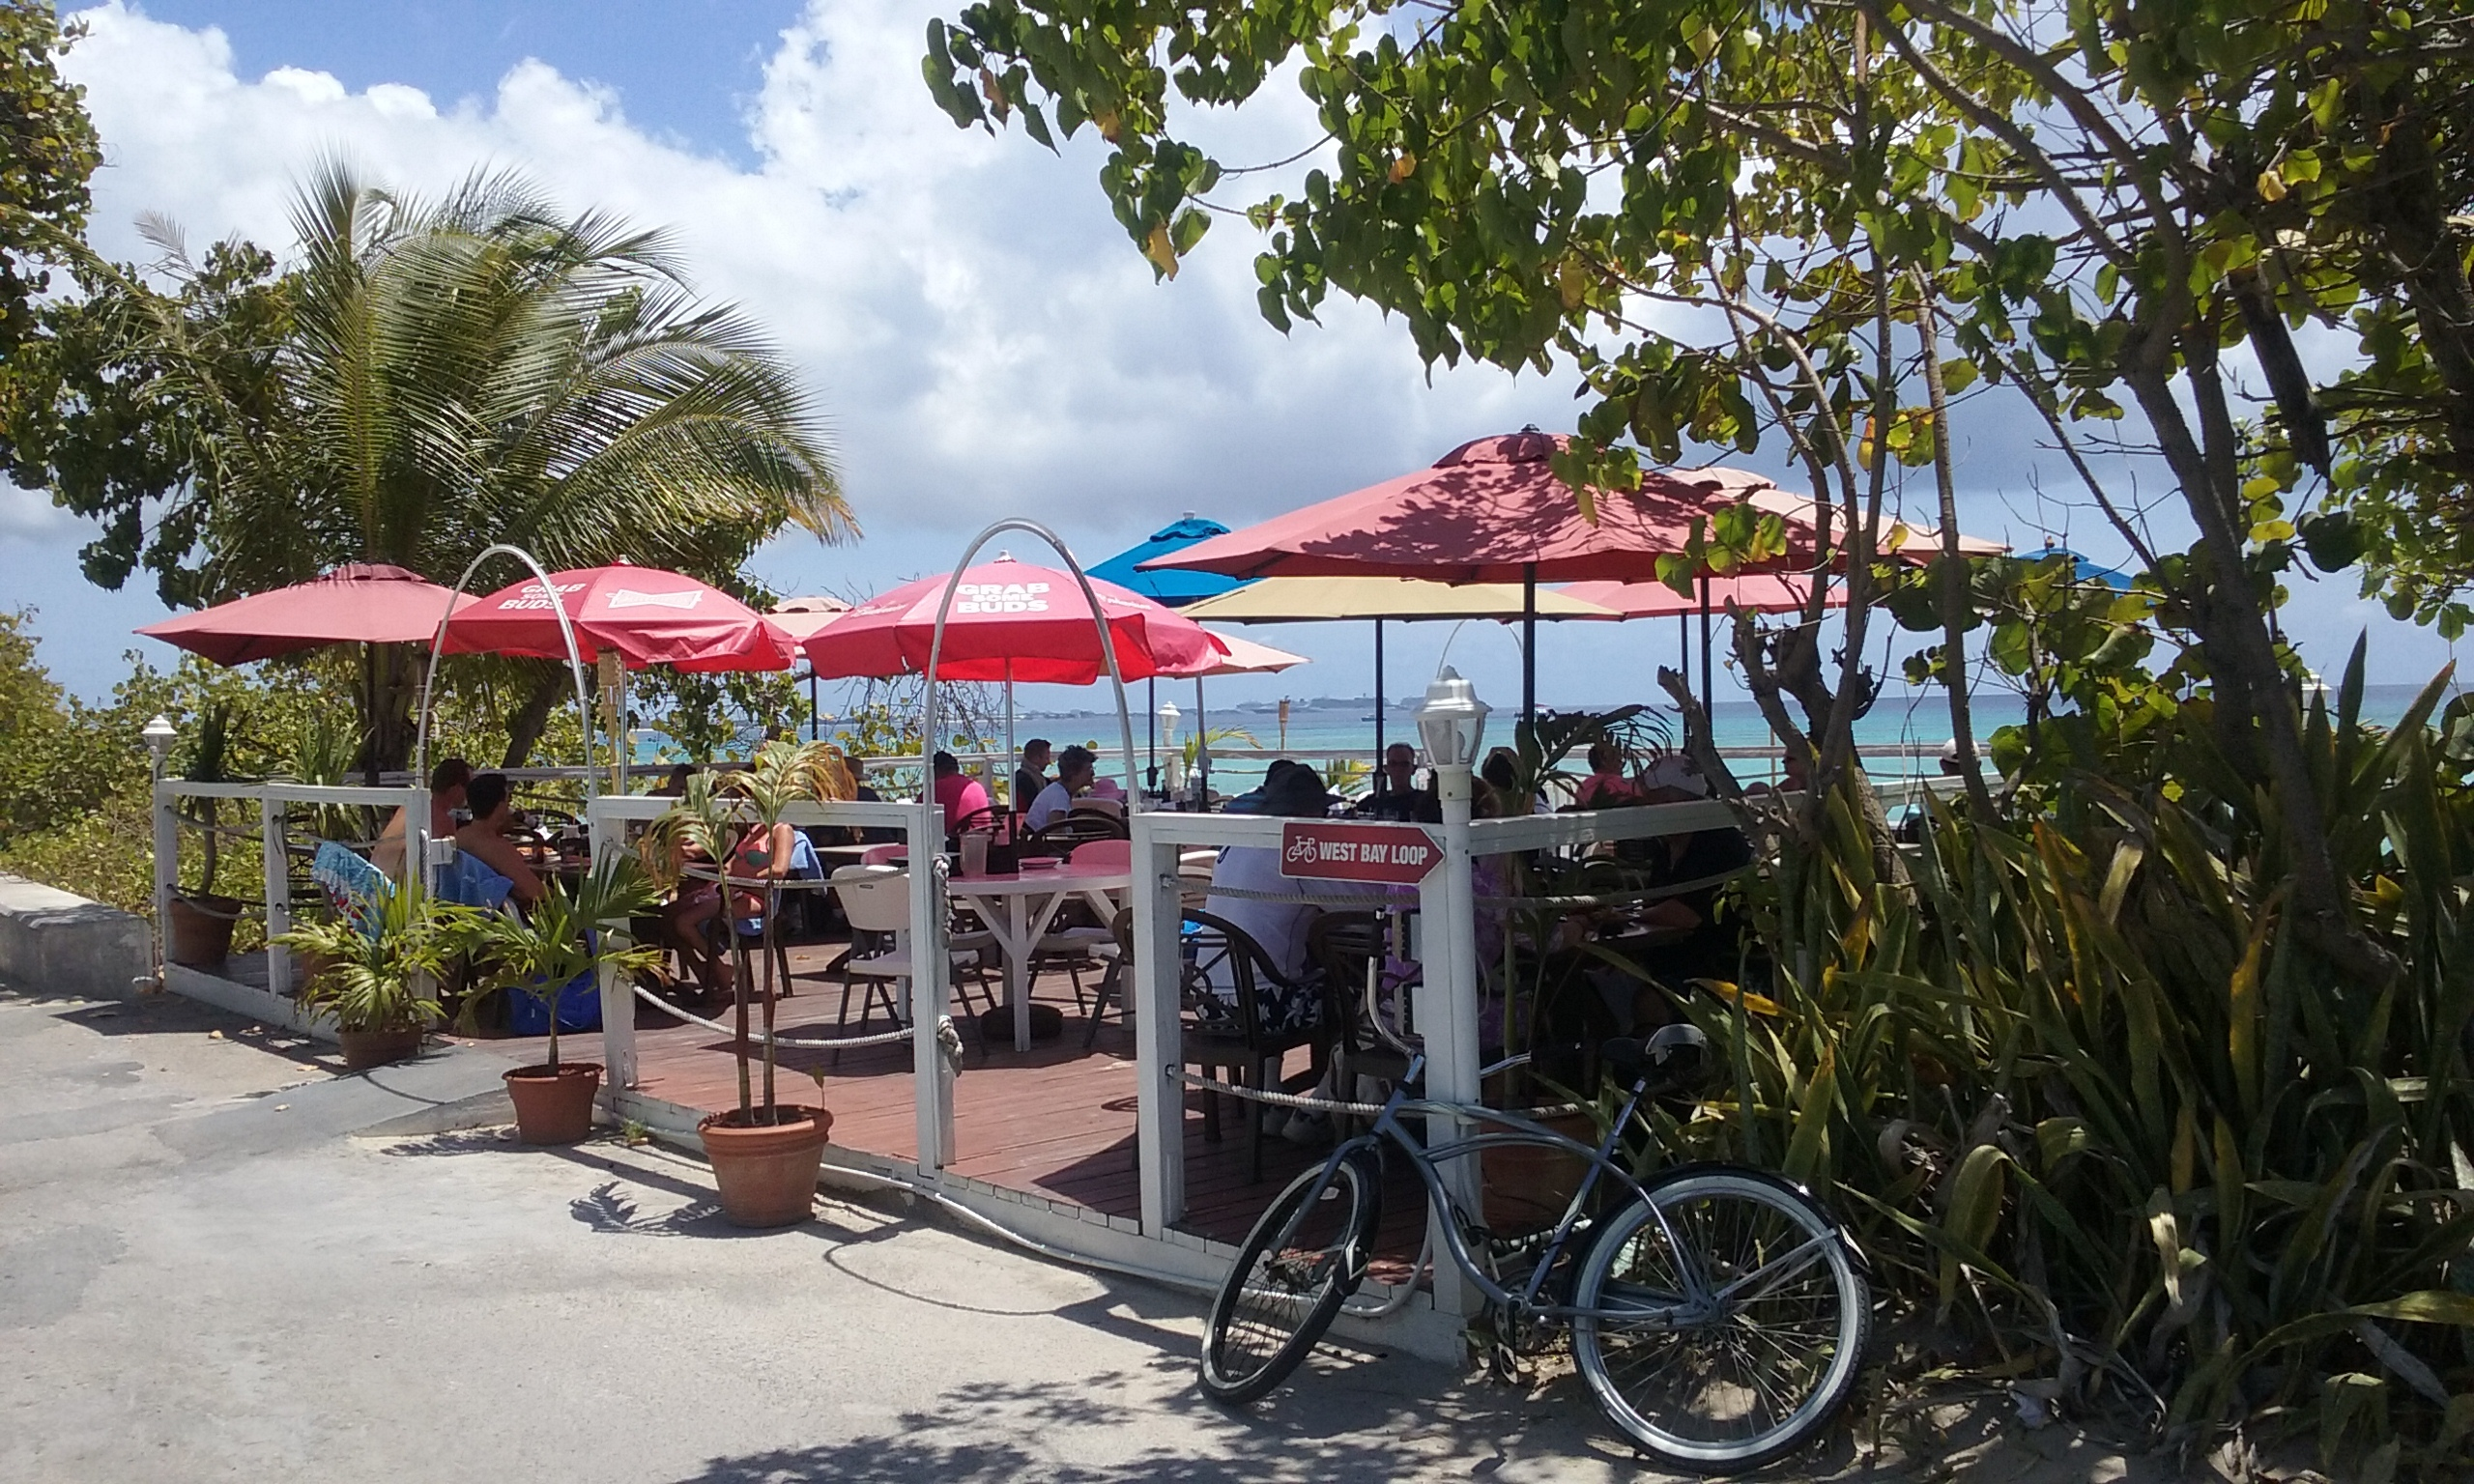 Lunch in the Caymans